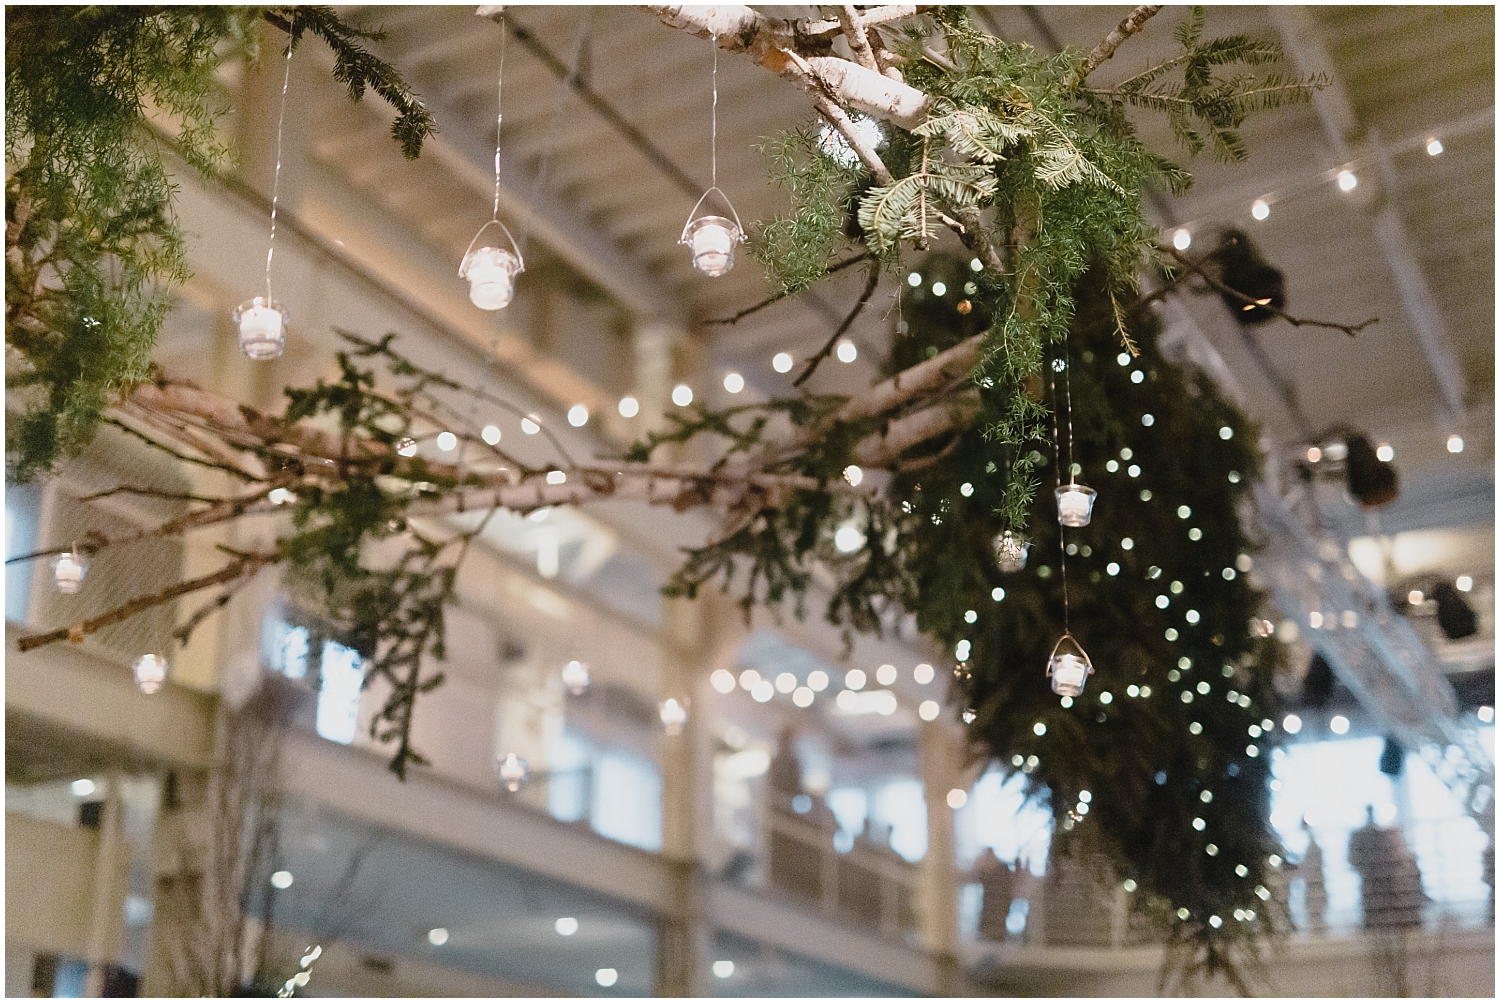 Minnesota Wedding Planner, Mpls Wedding Planner, Machine Shop MPLS, Mpls Wedding Venue,   String lights wedding decor